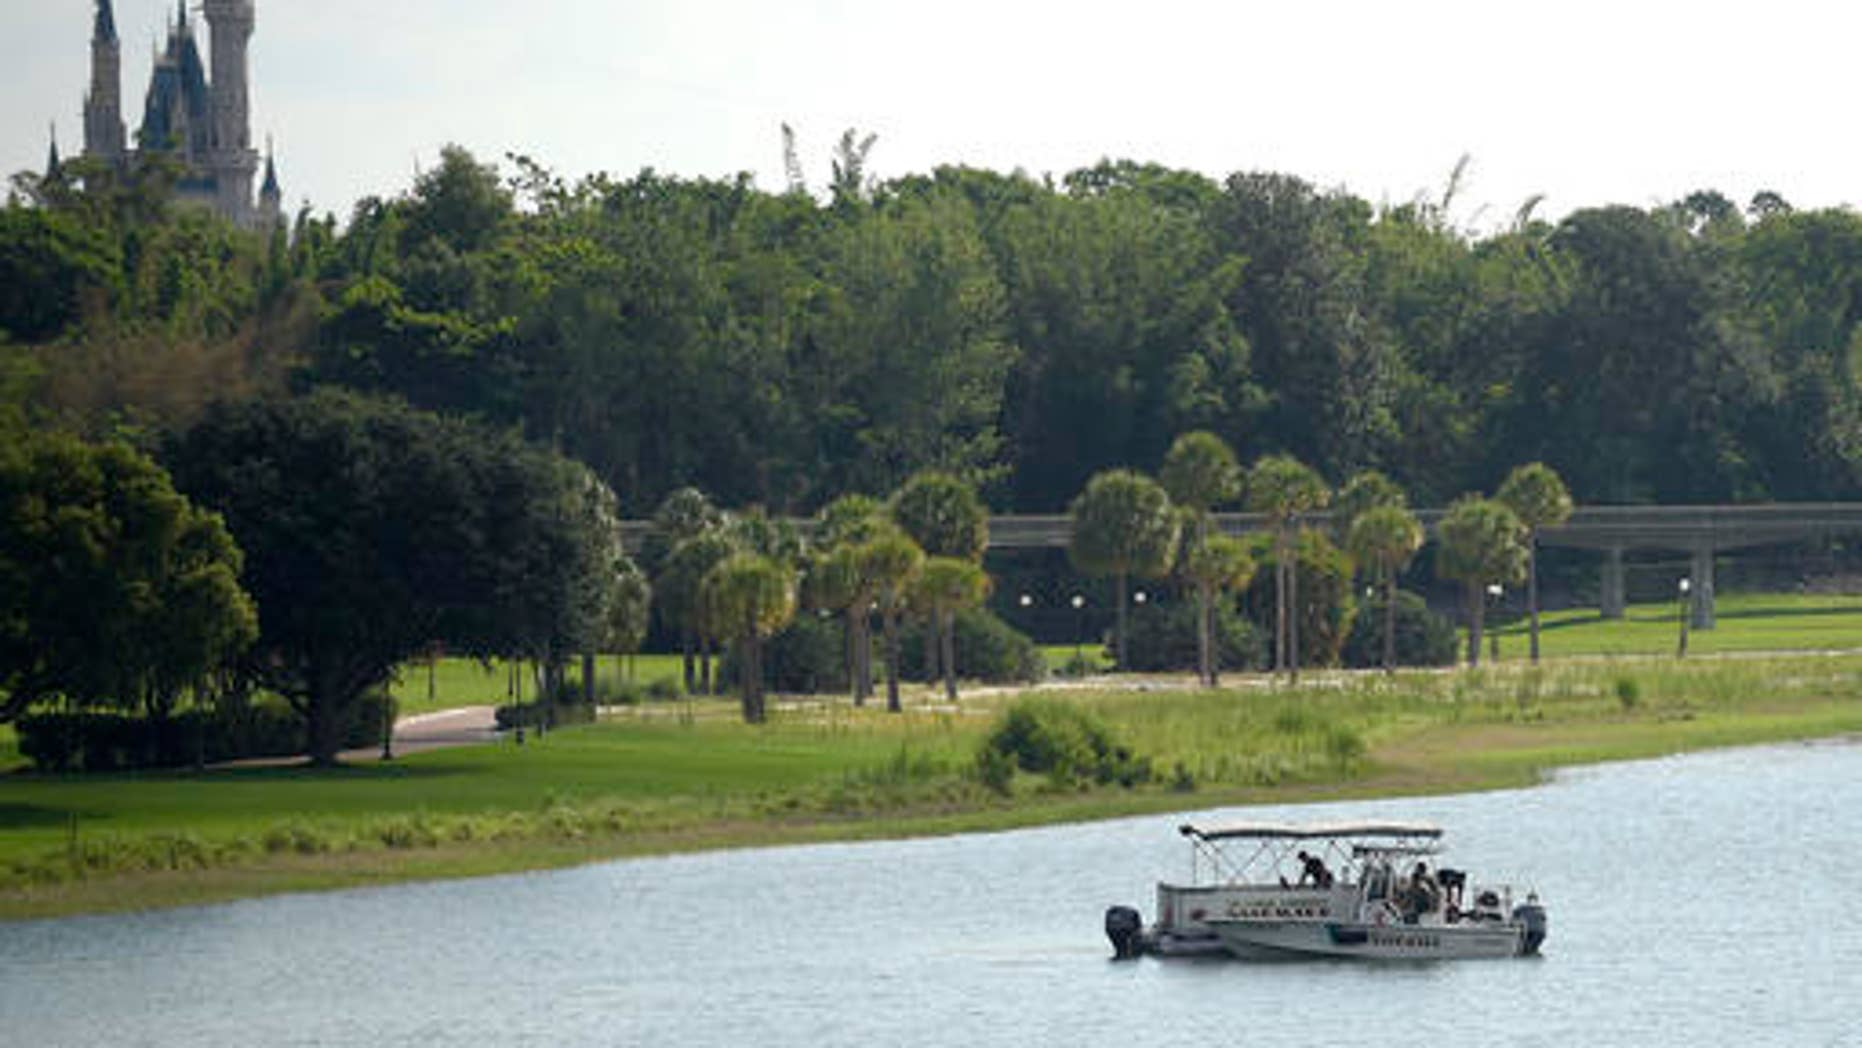 June 15: Orange County Sheriff's officers are seen searching for the boy in the Seven Seas Lagoon between Walt Disney World's Magic Kingdom theme park, left, and the Grand Floridian Resort & Spa.